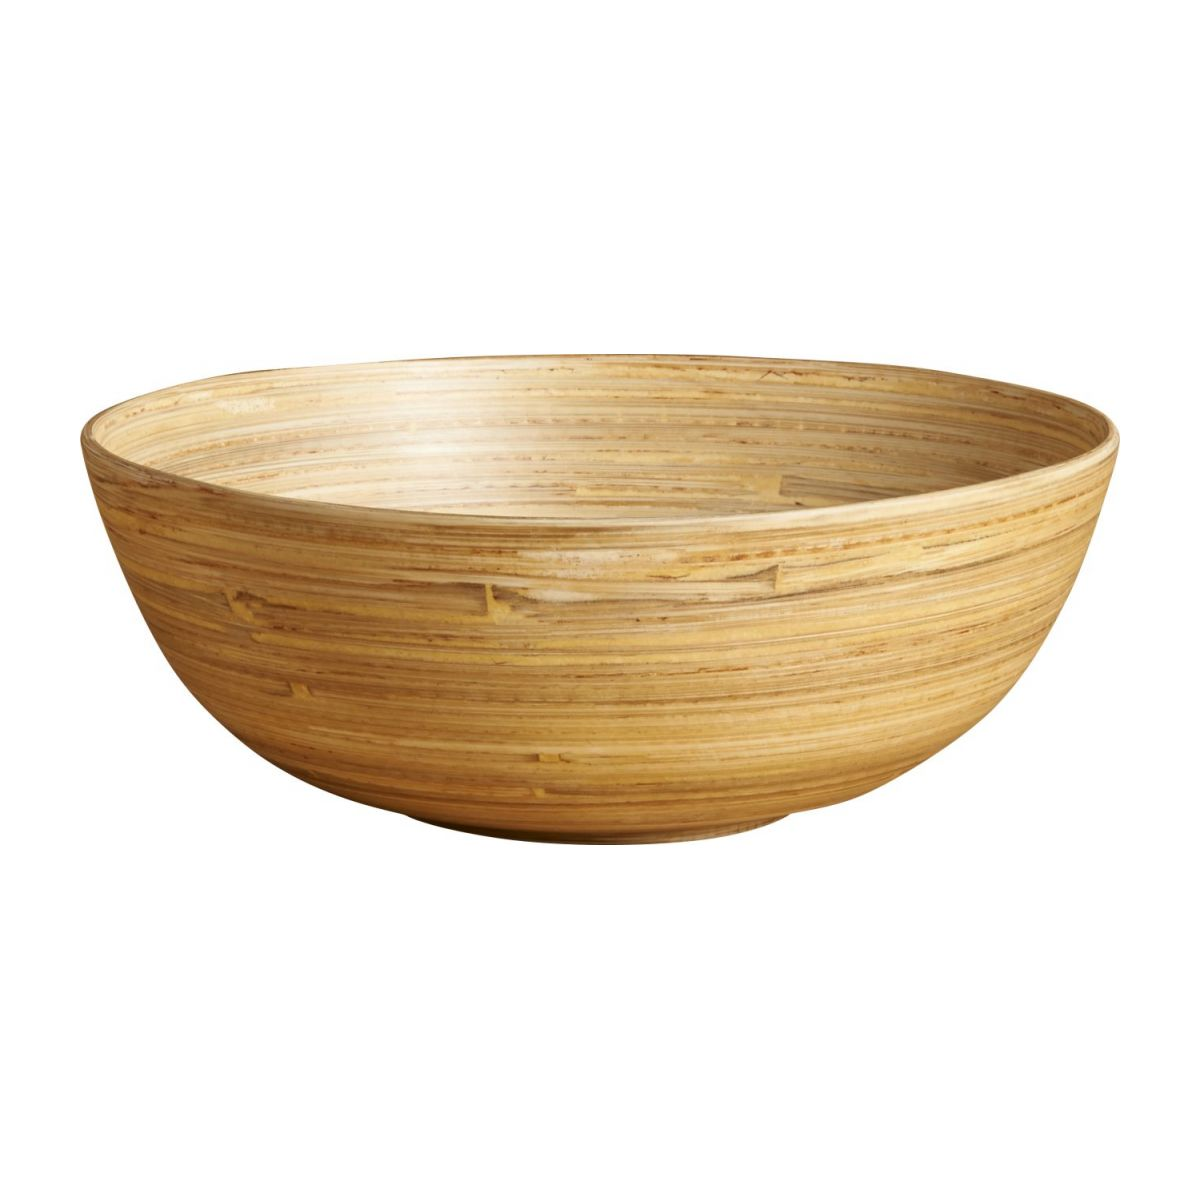 Grand bol 20 cm en bois naturel n°1